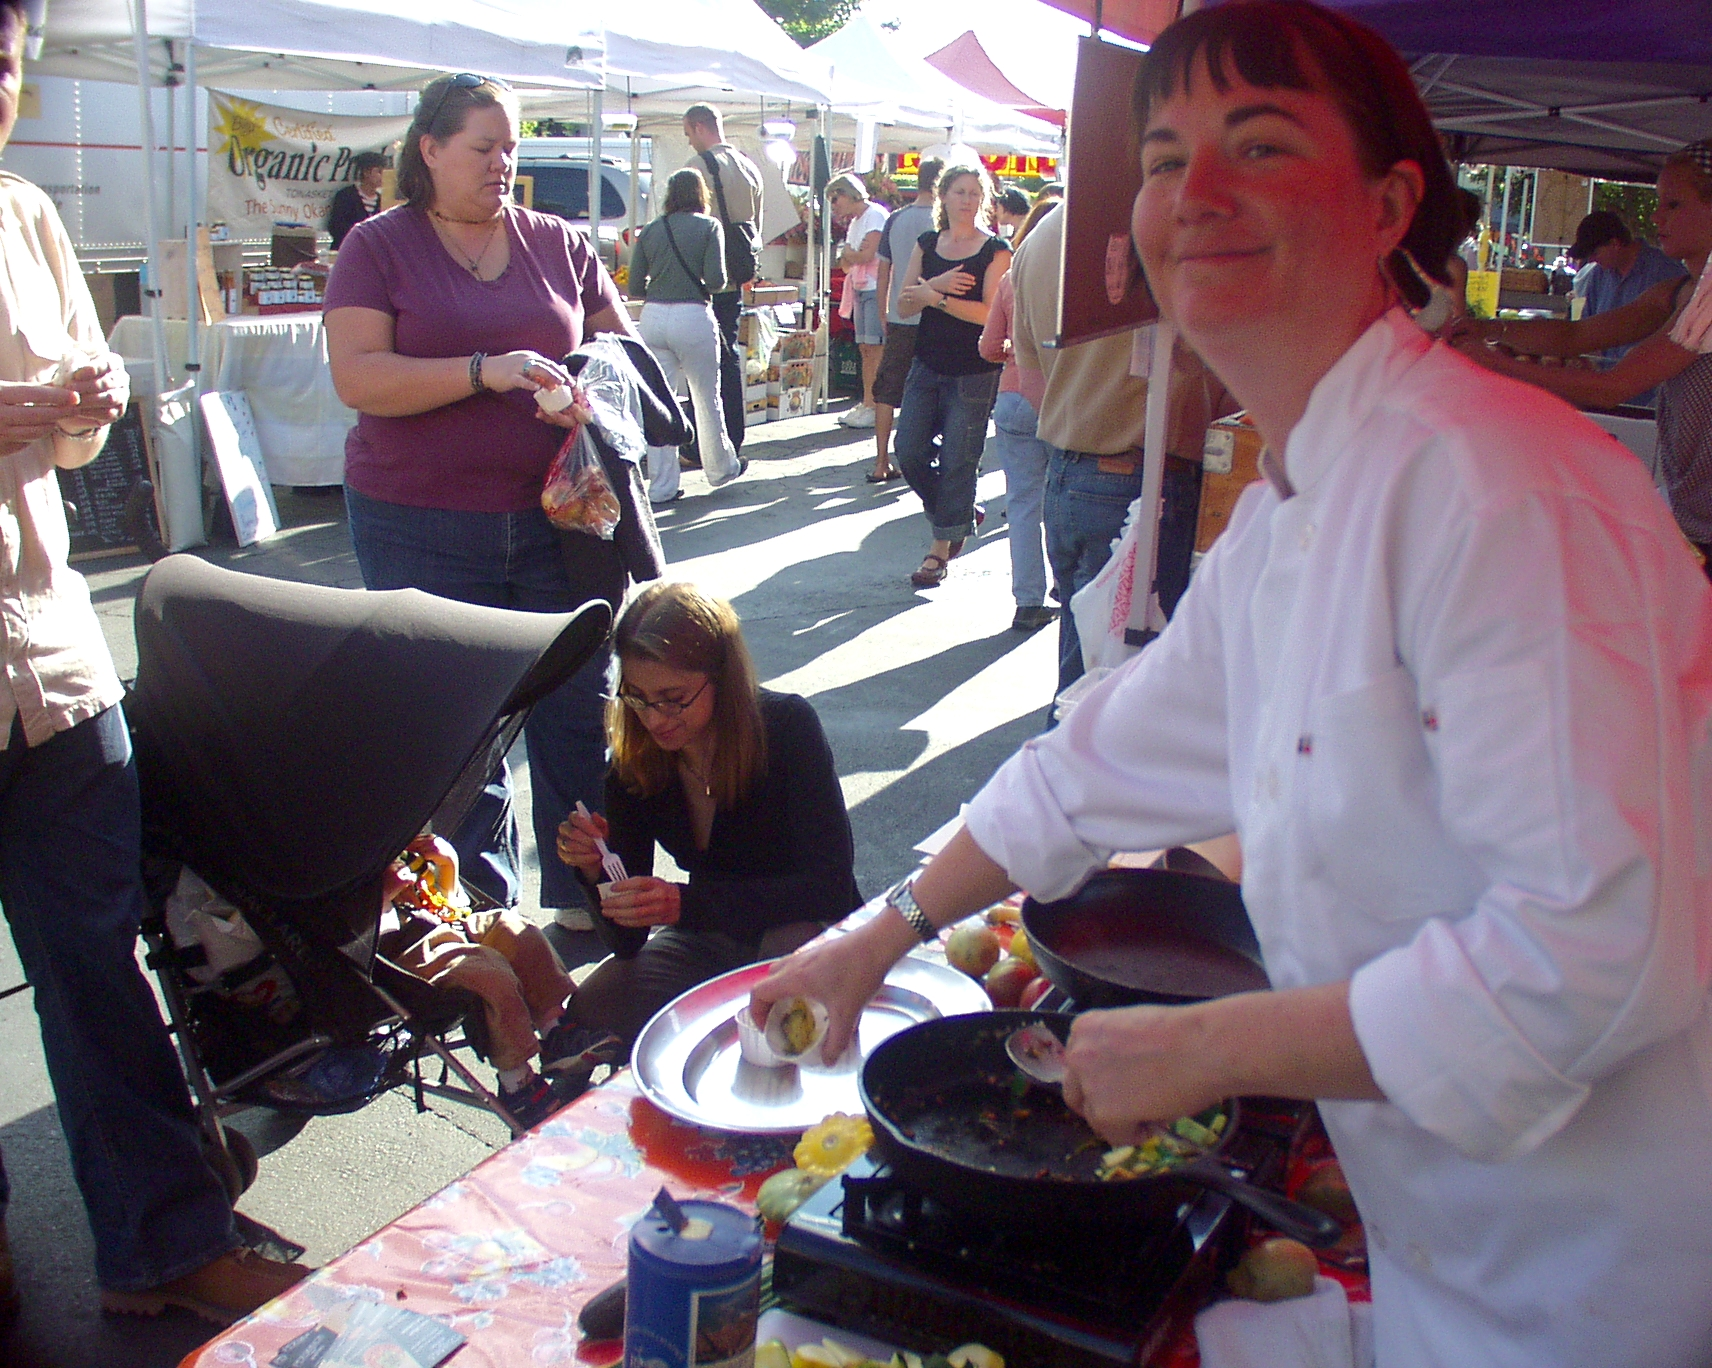 Chef Sara Moot, from Persimmon, performing a cooking demonstration at Wallingford Farmers Market in 2008. Photo copyright 2008 by Zachary D. Lyons.